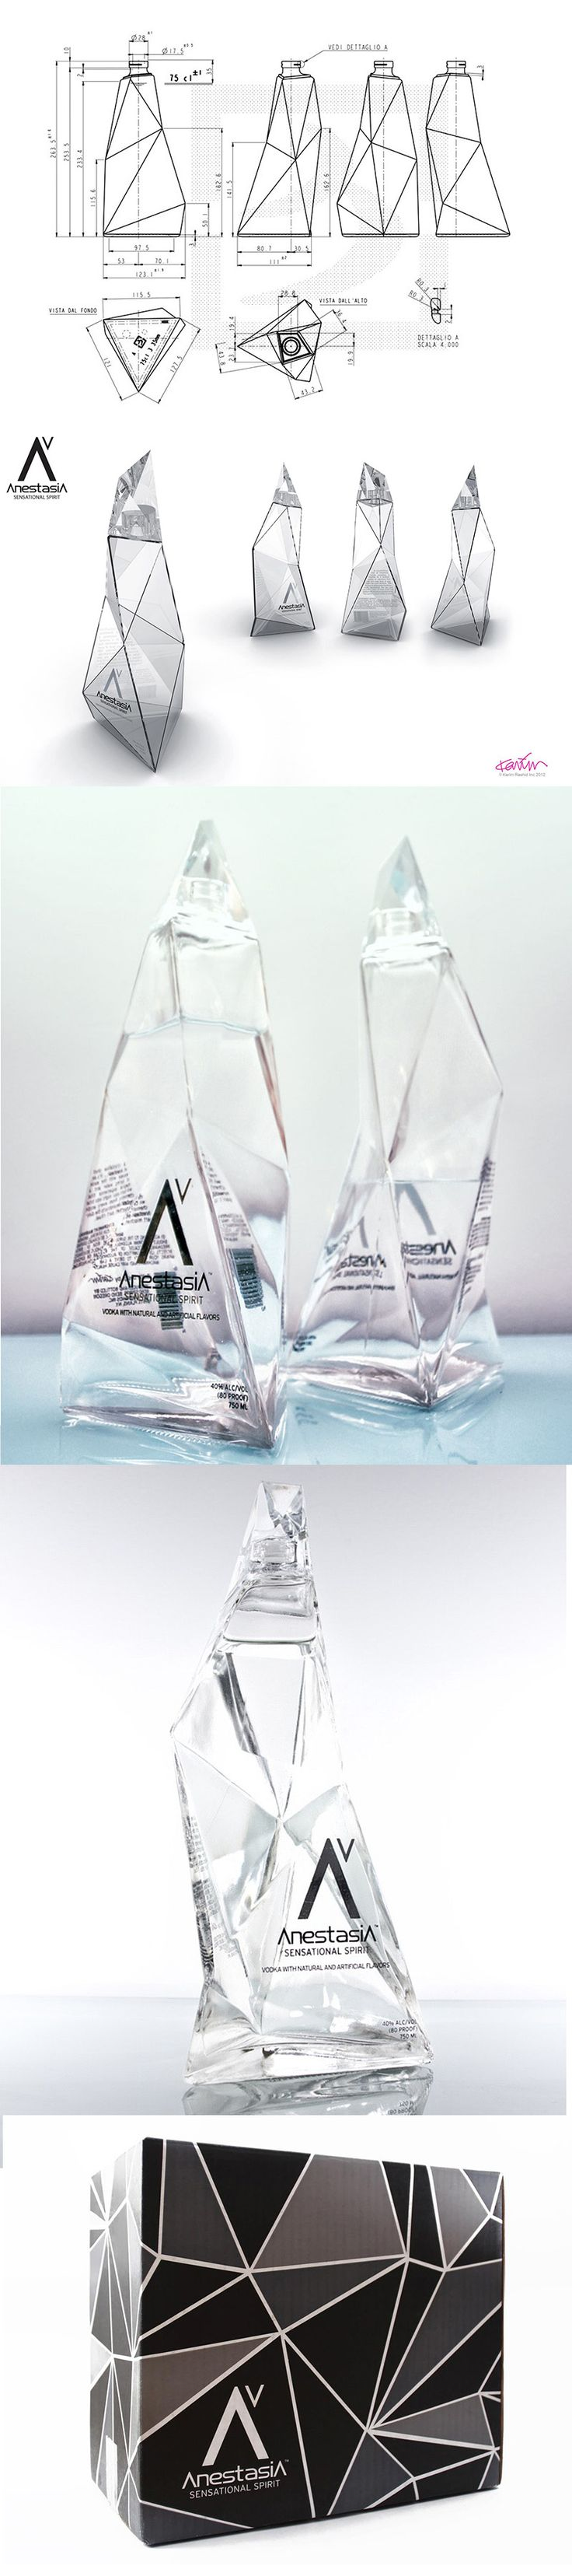 Karim Rashid's packaging designs for AnestasiA Vodka from start to finish. Todos se suben al low poly, dentro de unos años va a ser como la sombrita de photoshop.